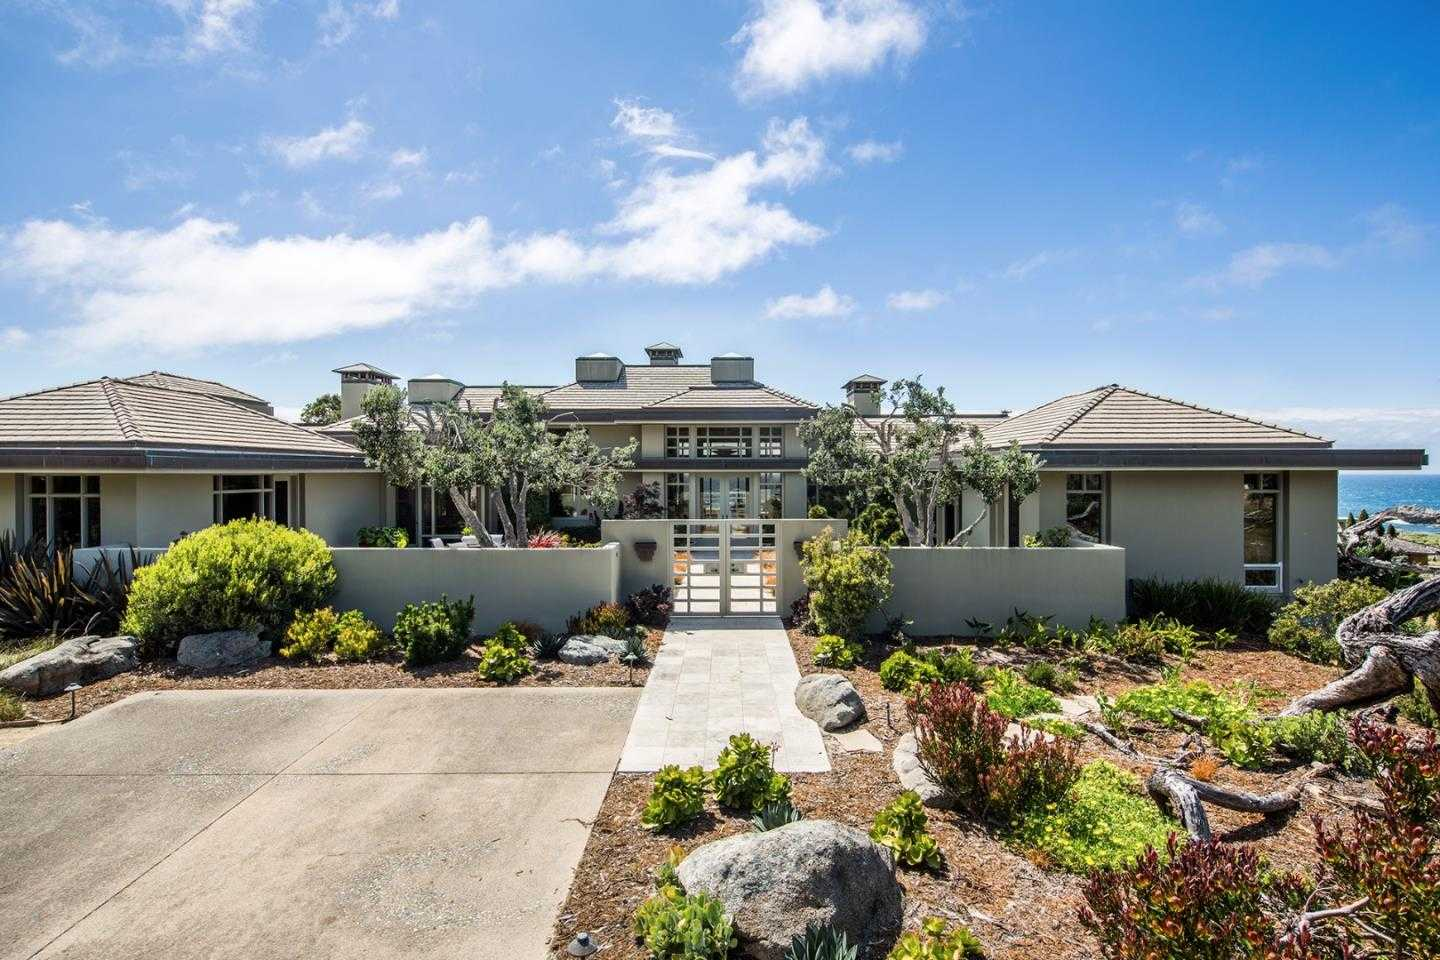 $6,350,000 - 3Br/4Ba -  for Sale in Pacific Grove